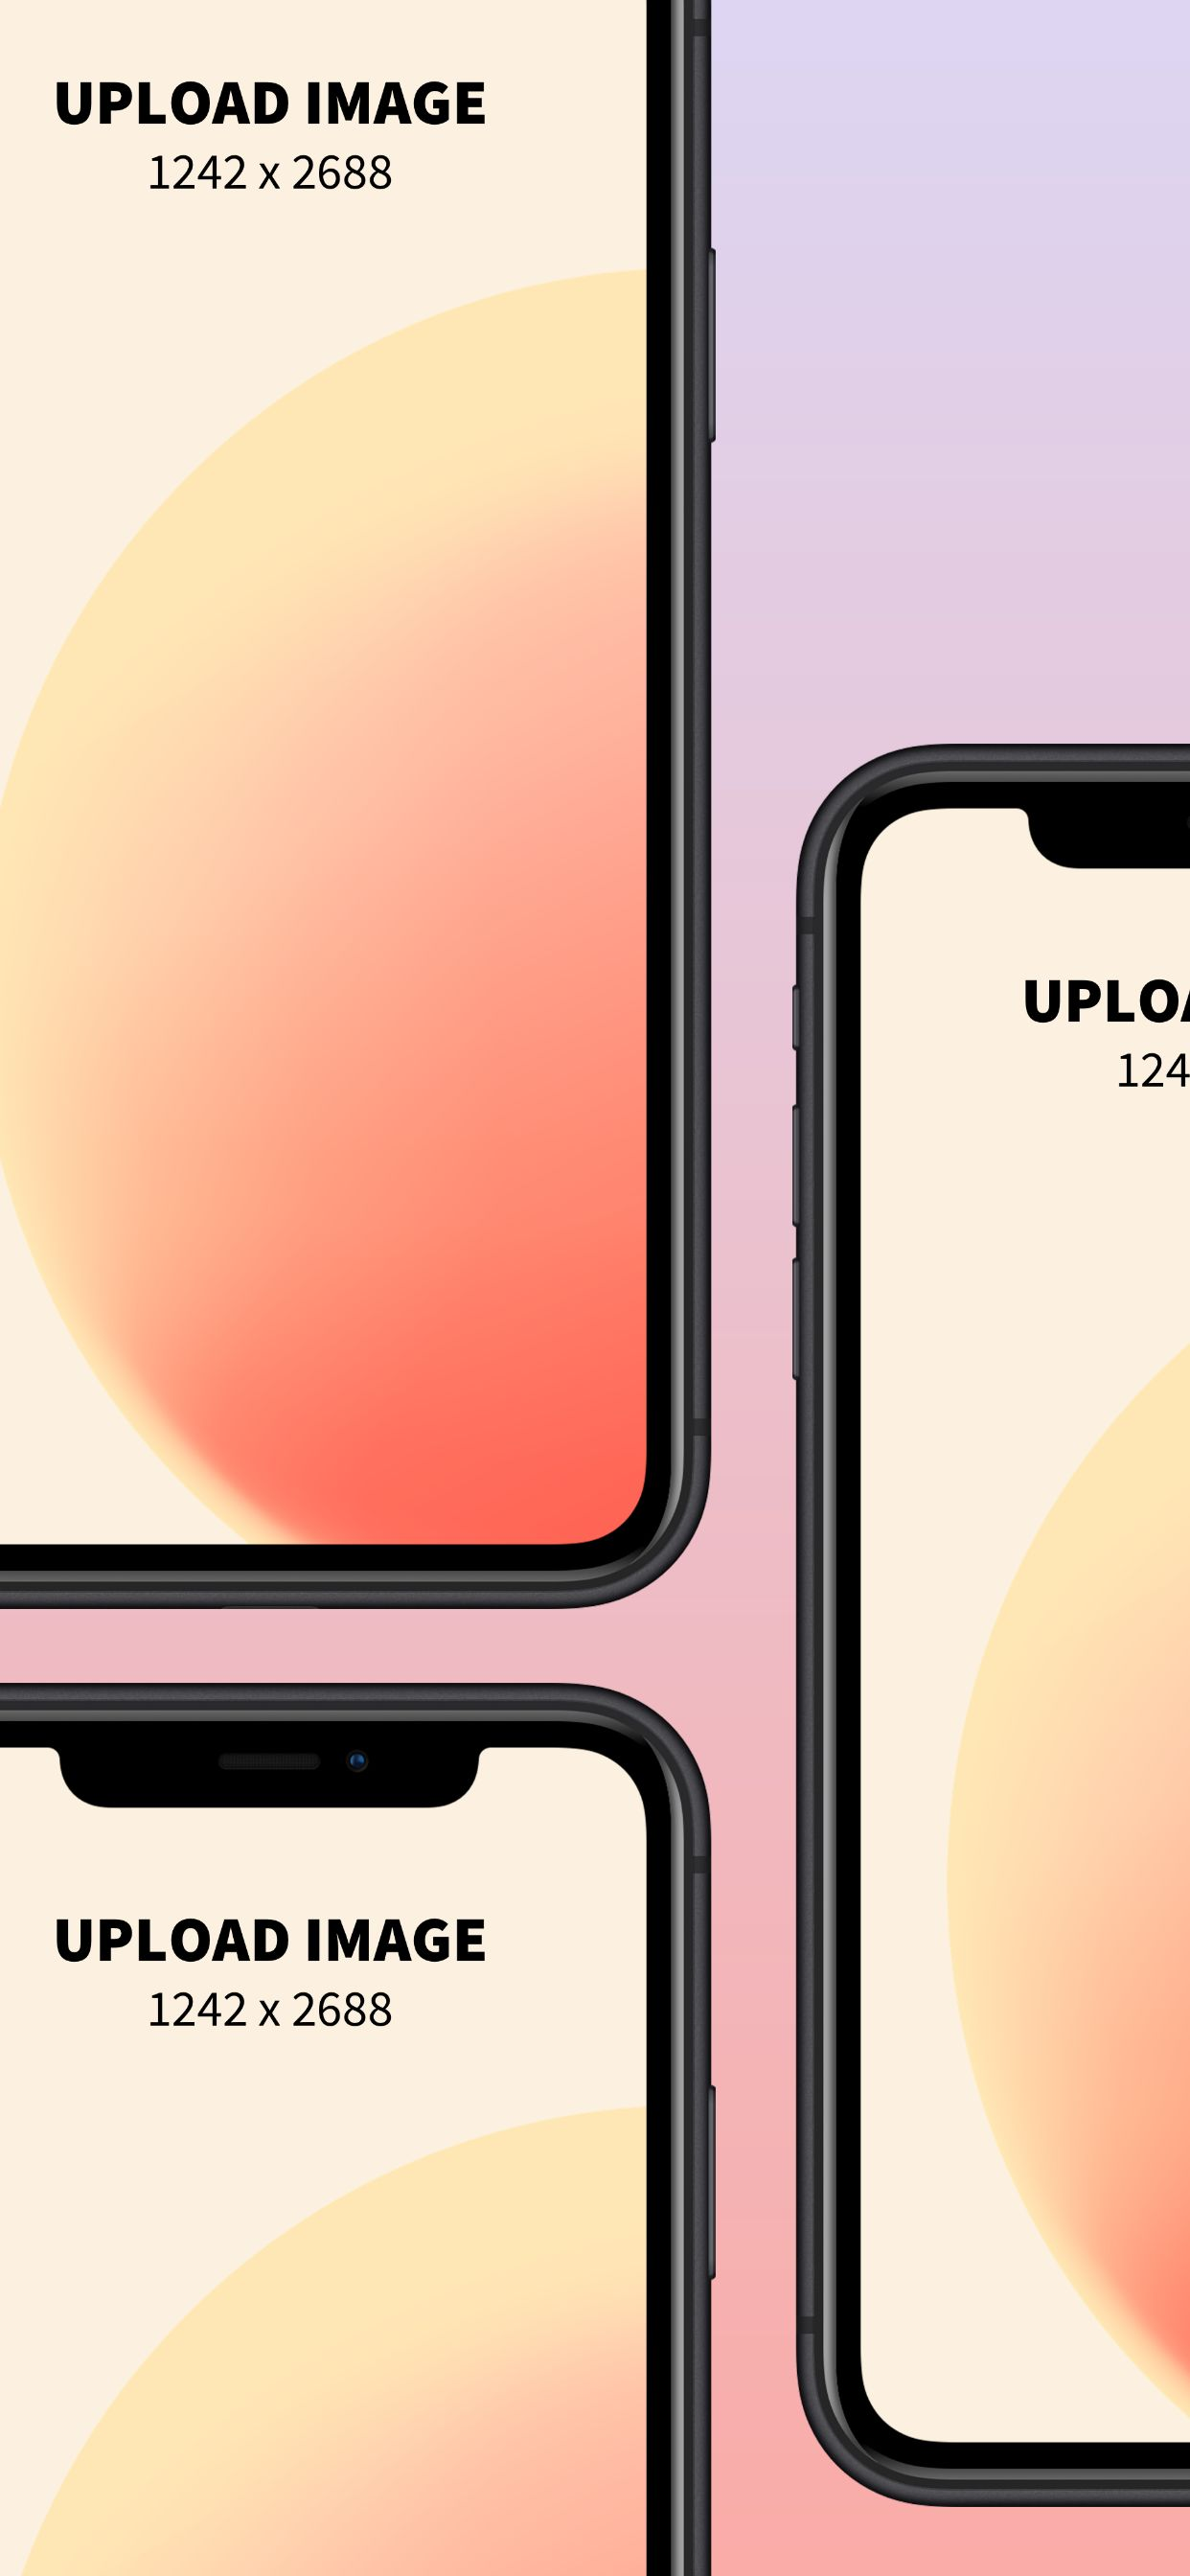 iPhone XS Max Screenshot 11 template. Quickly edit fonts, text, colors, and more for free.